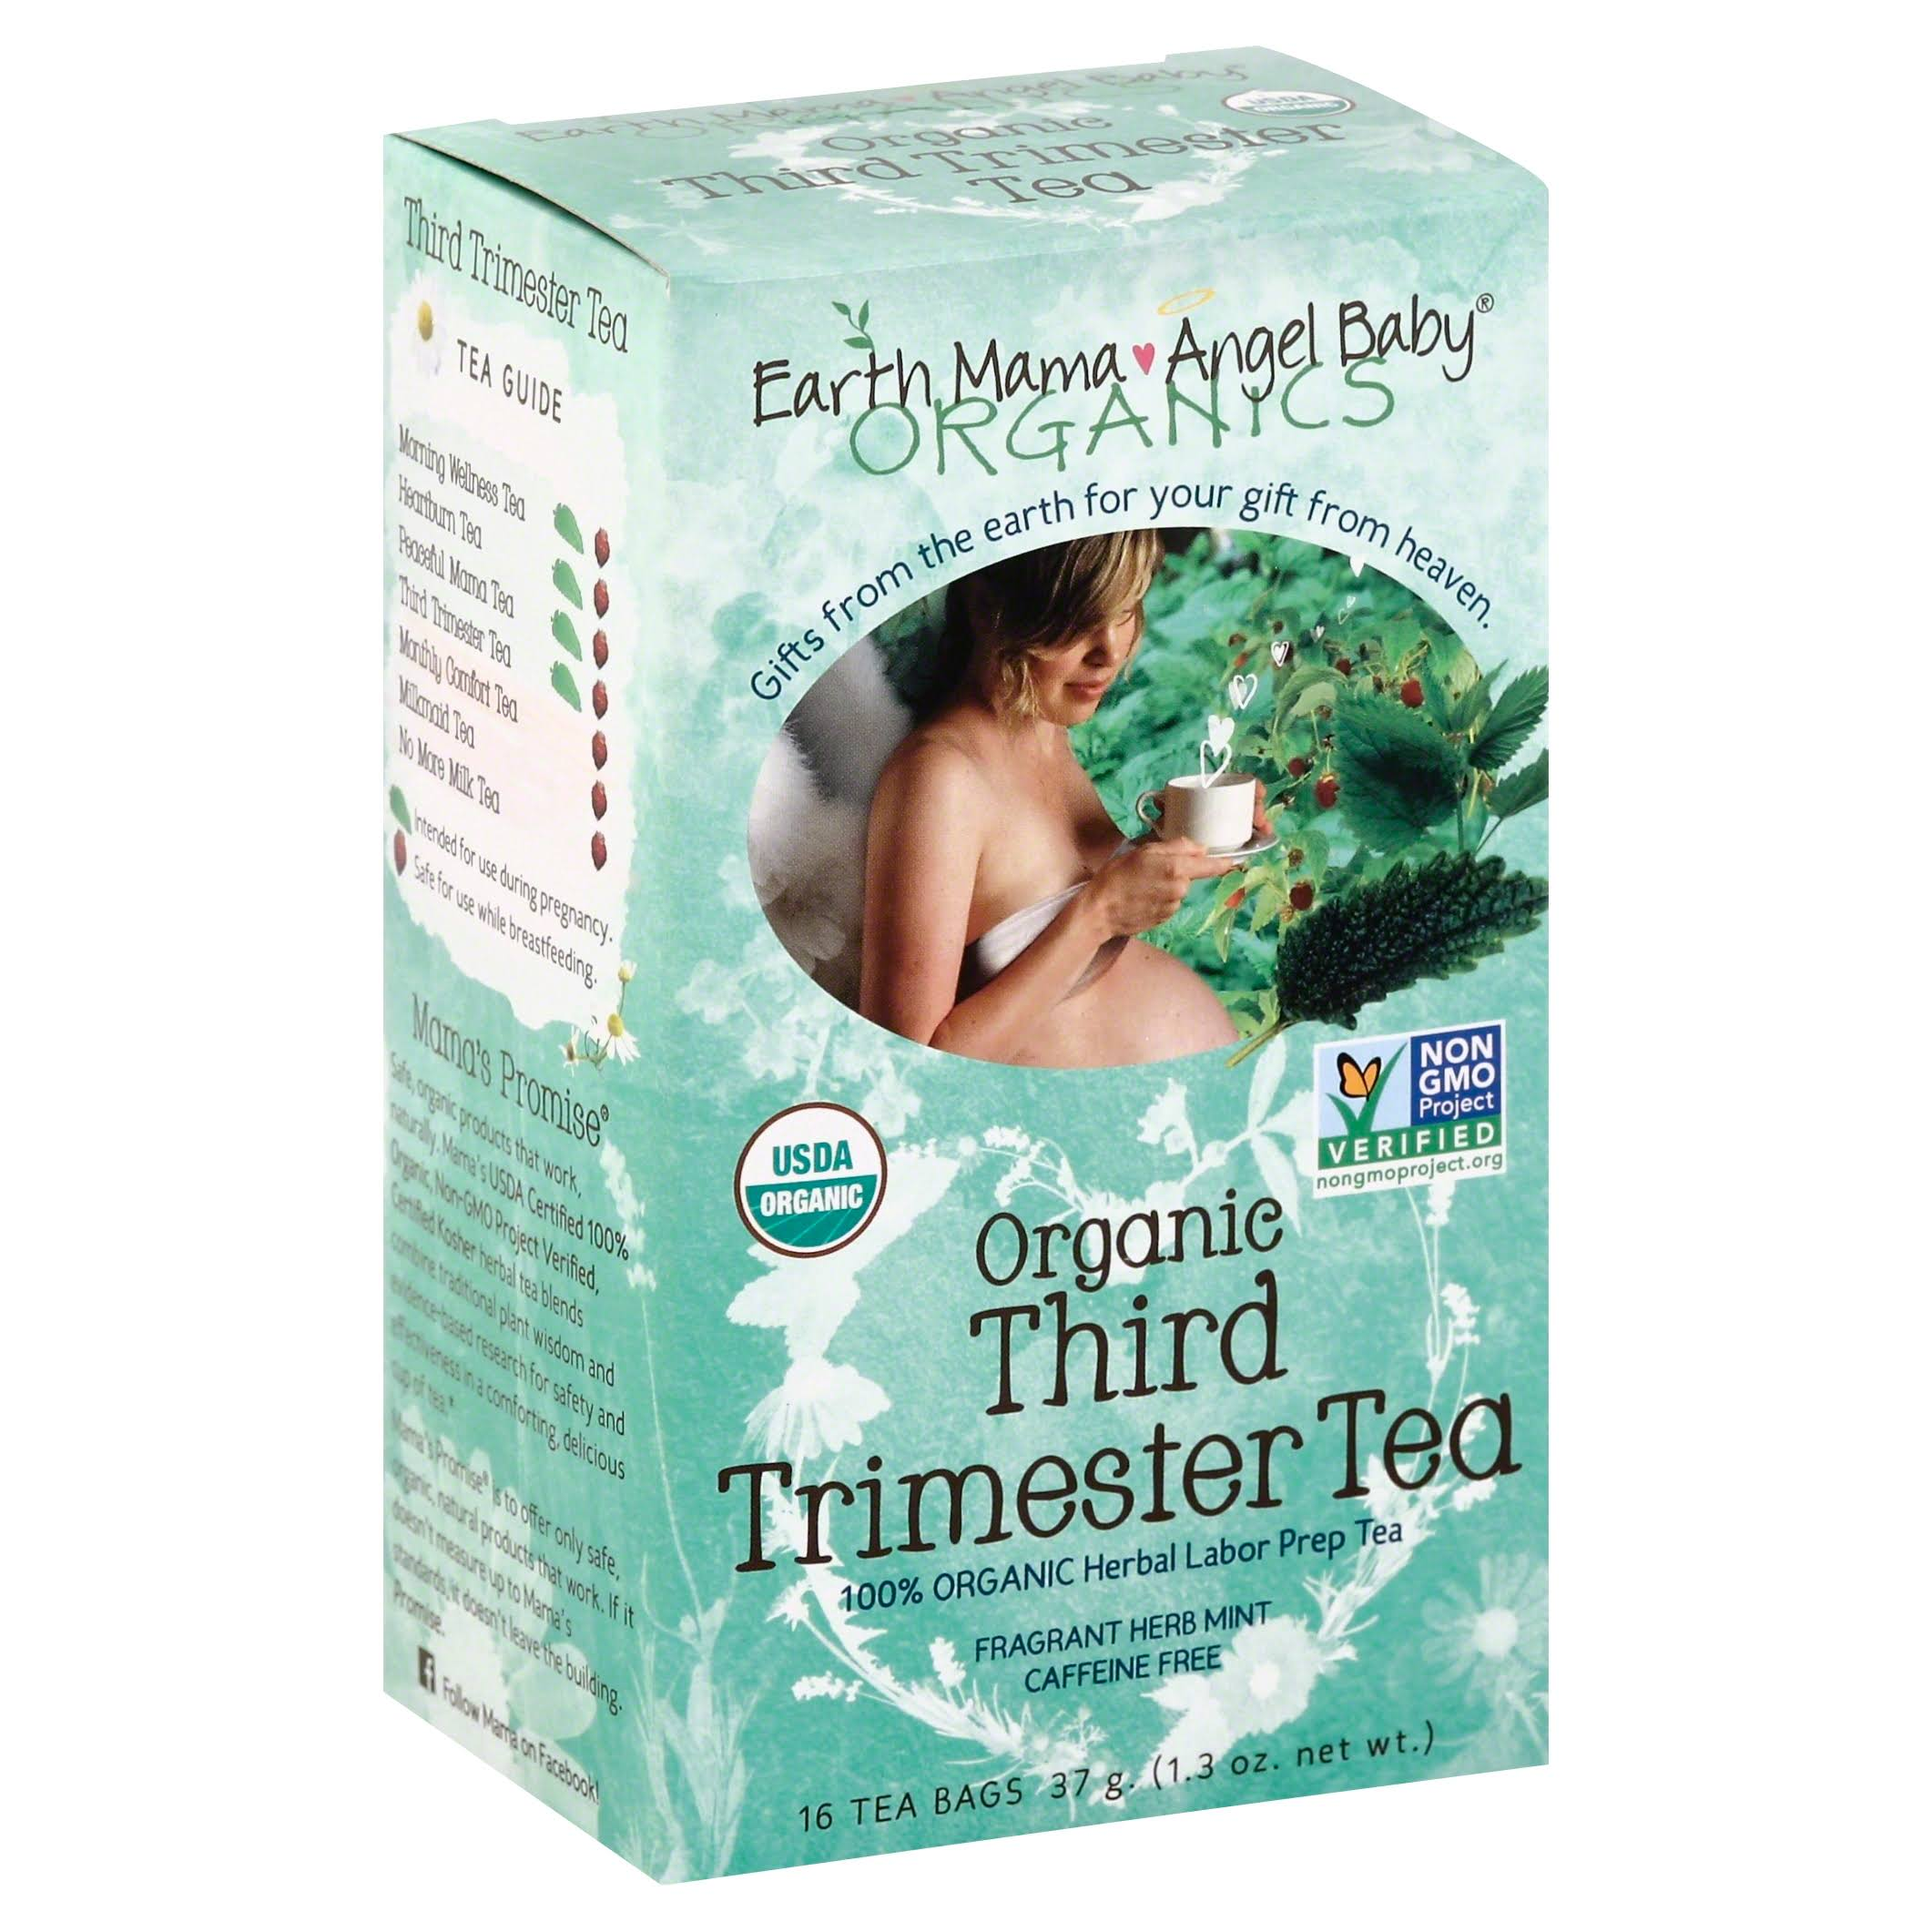 Earth Mama Angel Baby Organics Third Trimester Tea - 16 Tea Bags, Mint